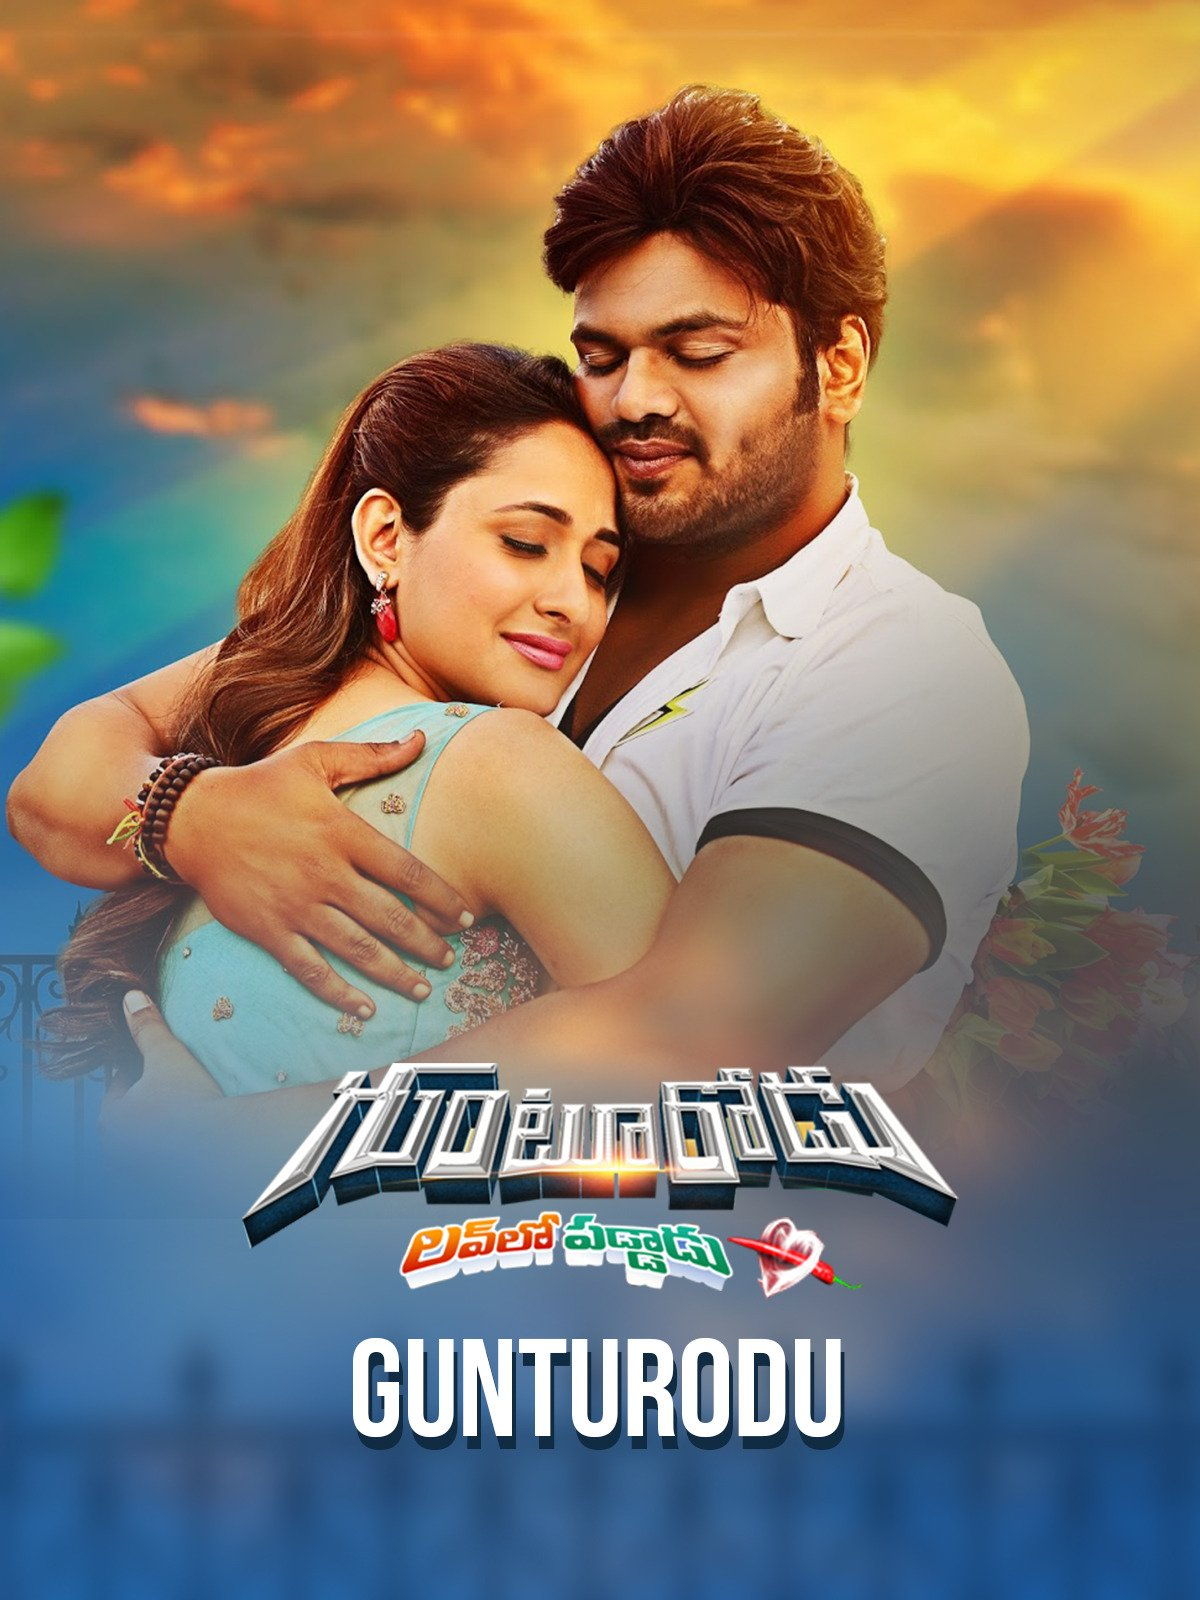 Gunturodu (2021) Hindi Dubbed Movie 720p HDRip AAC